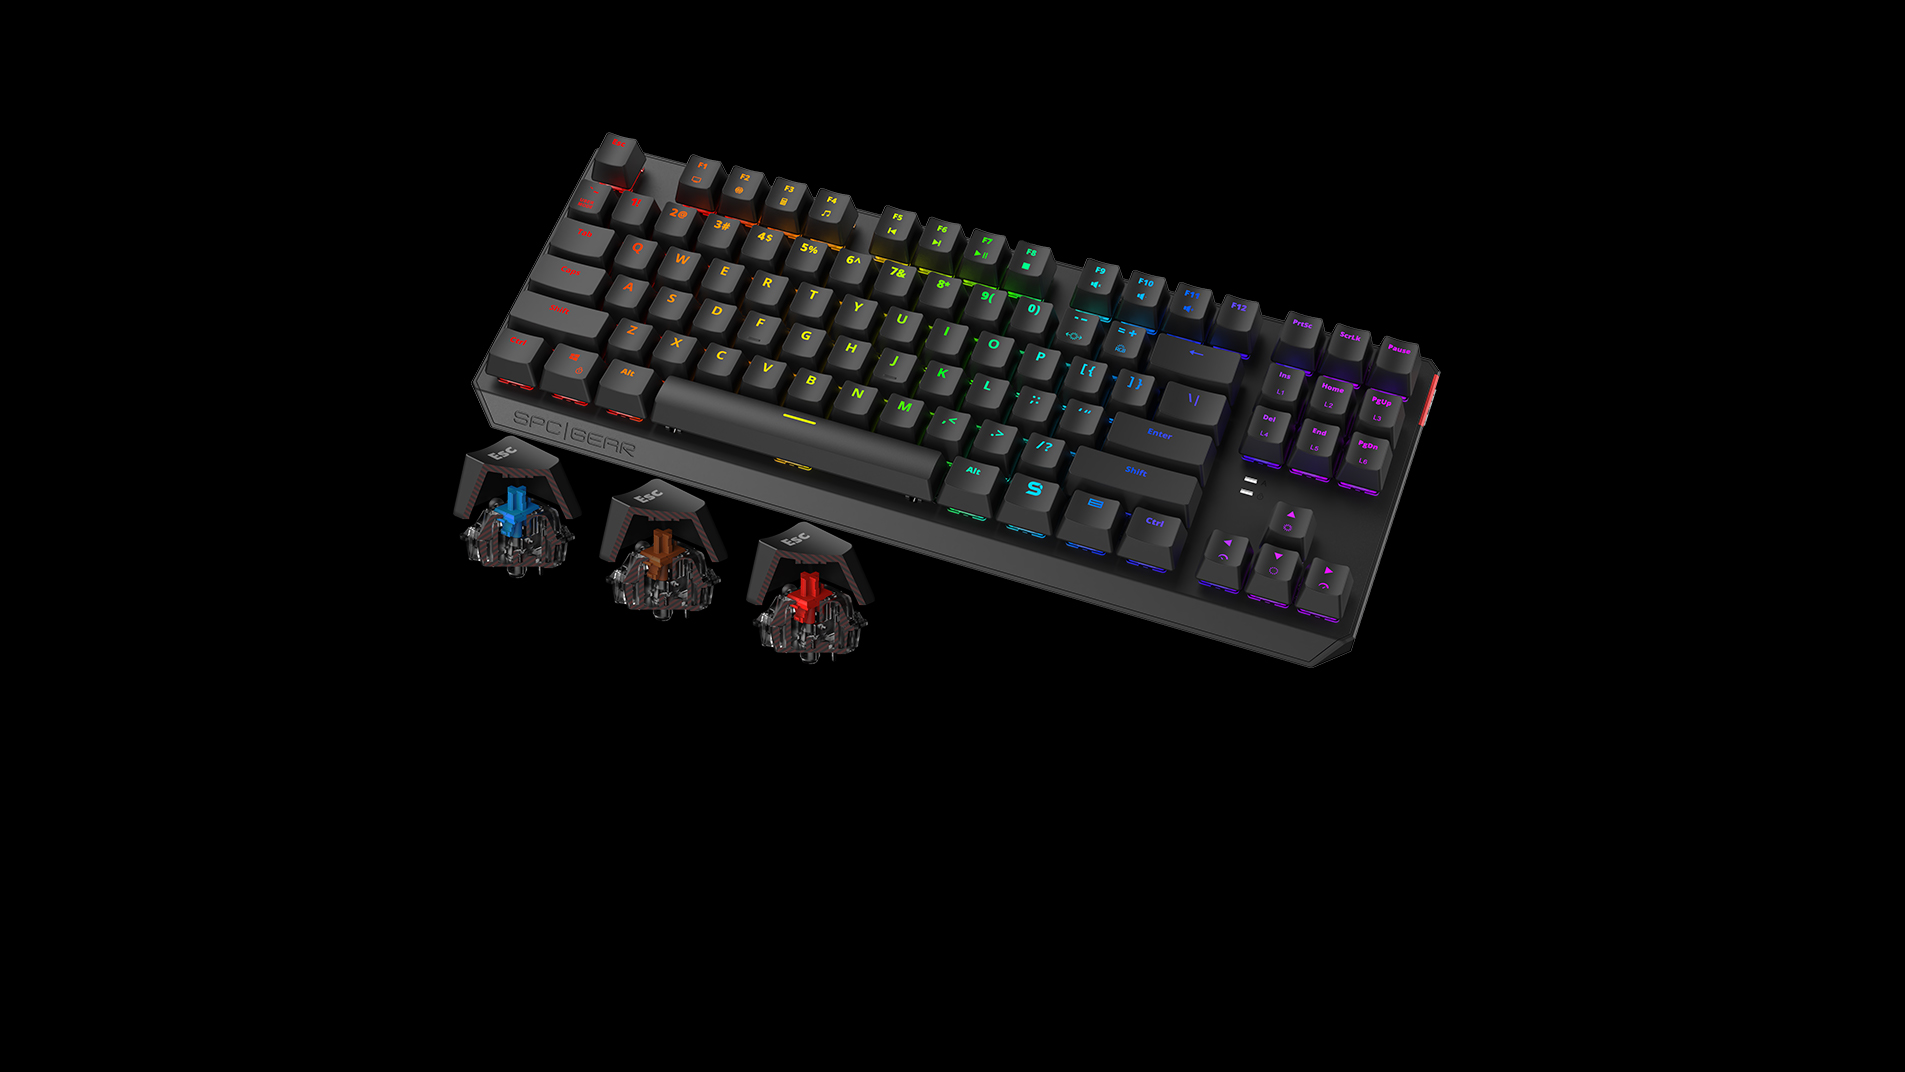 GK630K Tournament Kailh Blue/Brown/Red RGB